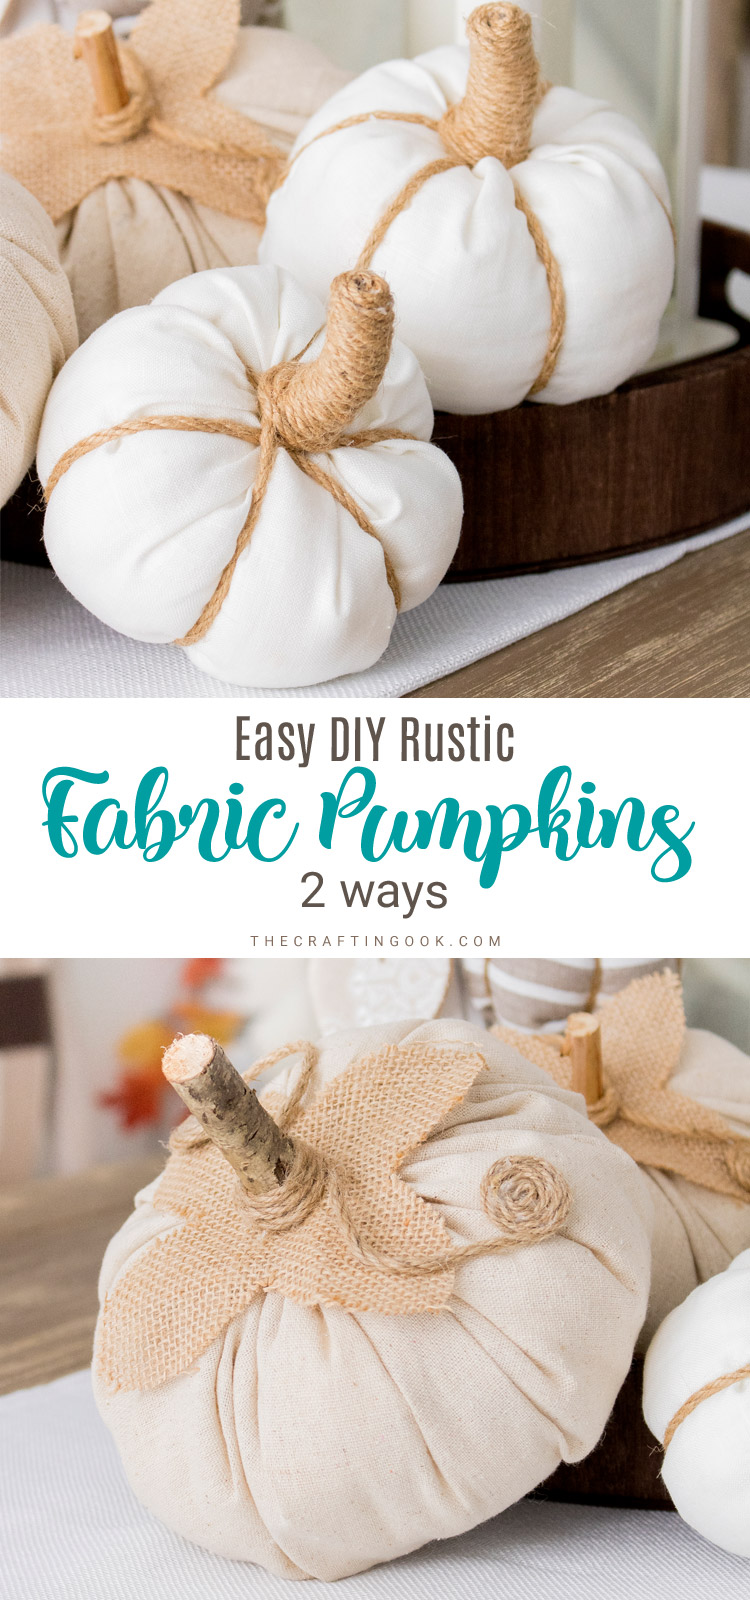 Rustic Fabric Pumpkins Tutorial